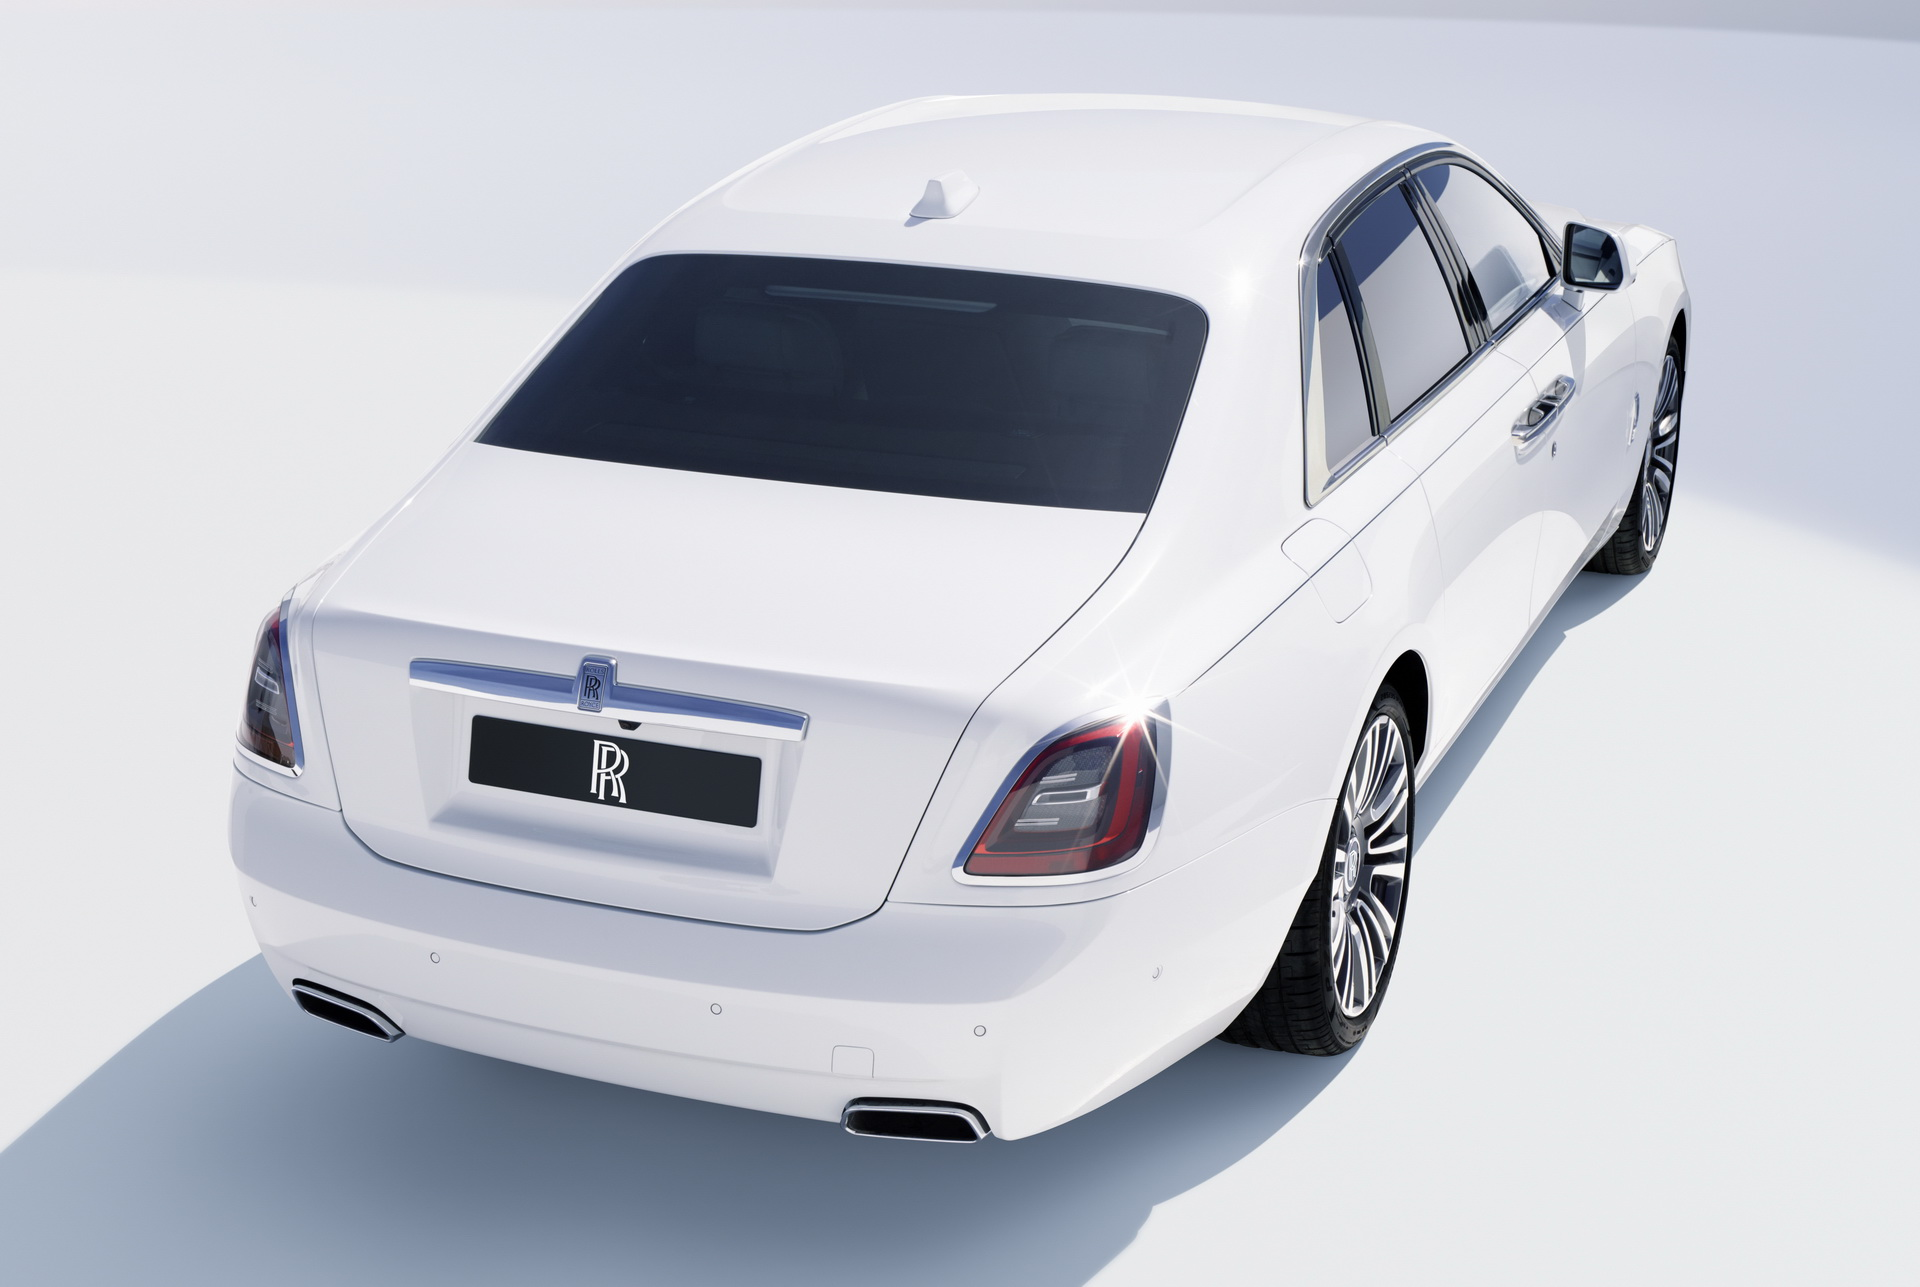 задняя часть Rolls-Royce Ghost 2021